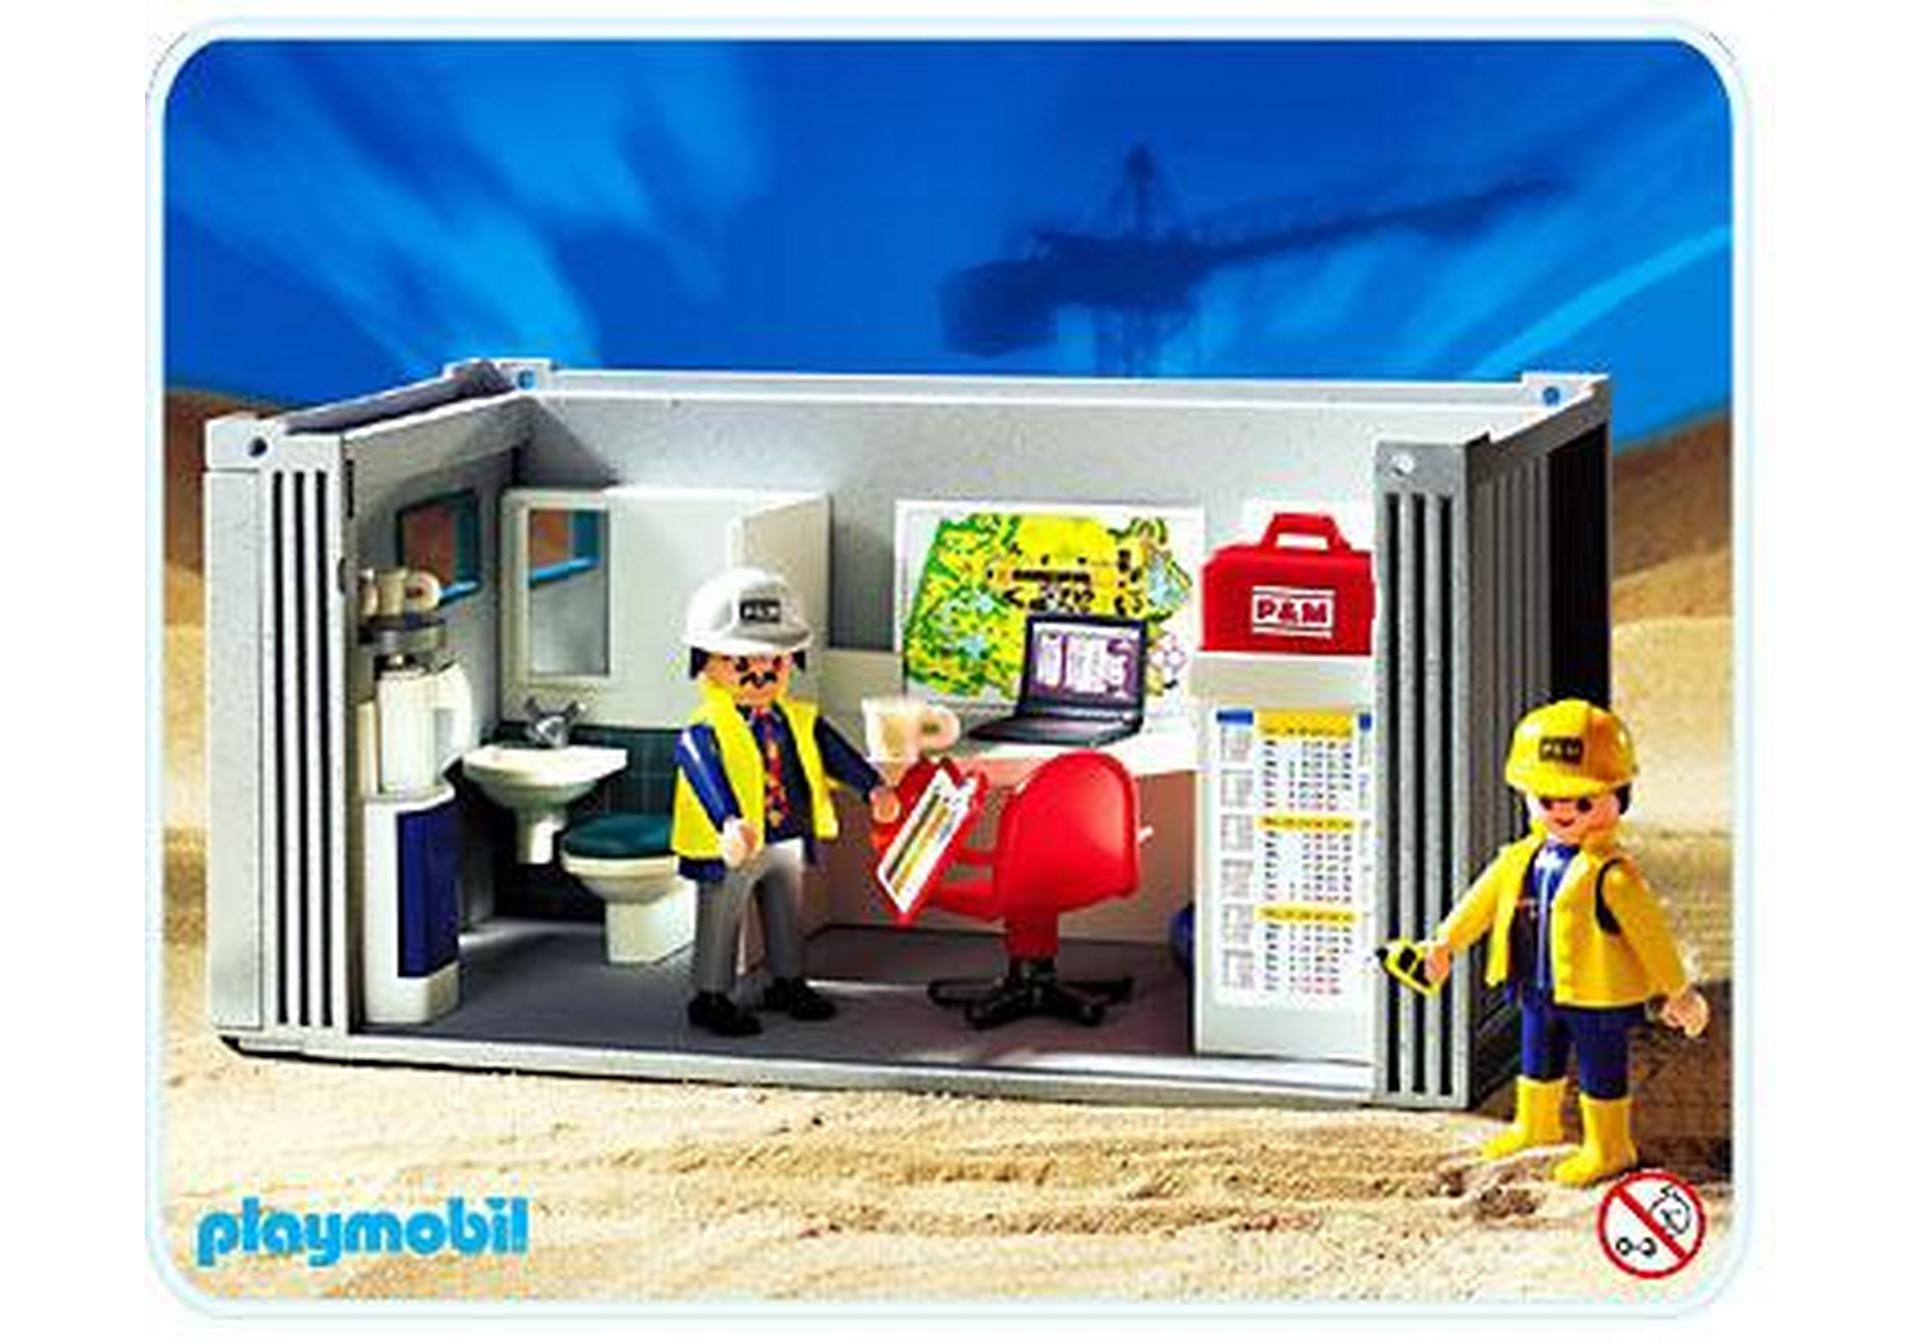 cabane de chantier 3260 a playmobil france. Black Bedroom Furniture Sets. Home Design Ideas